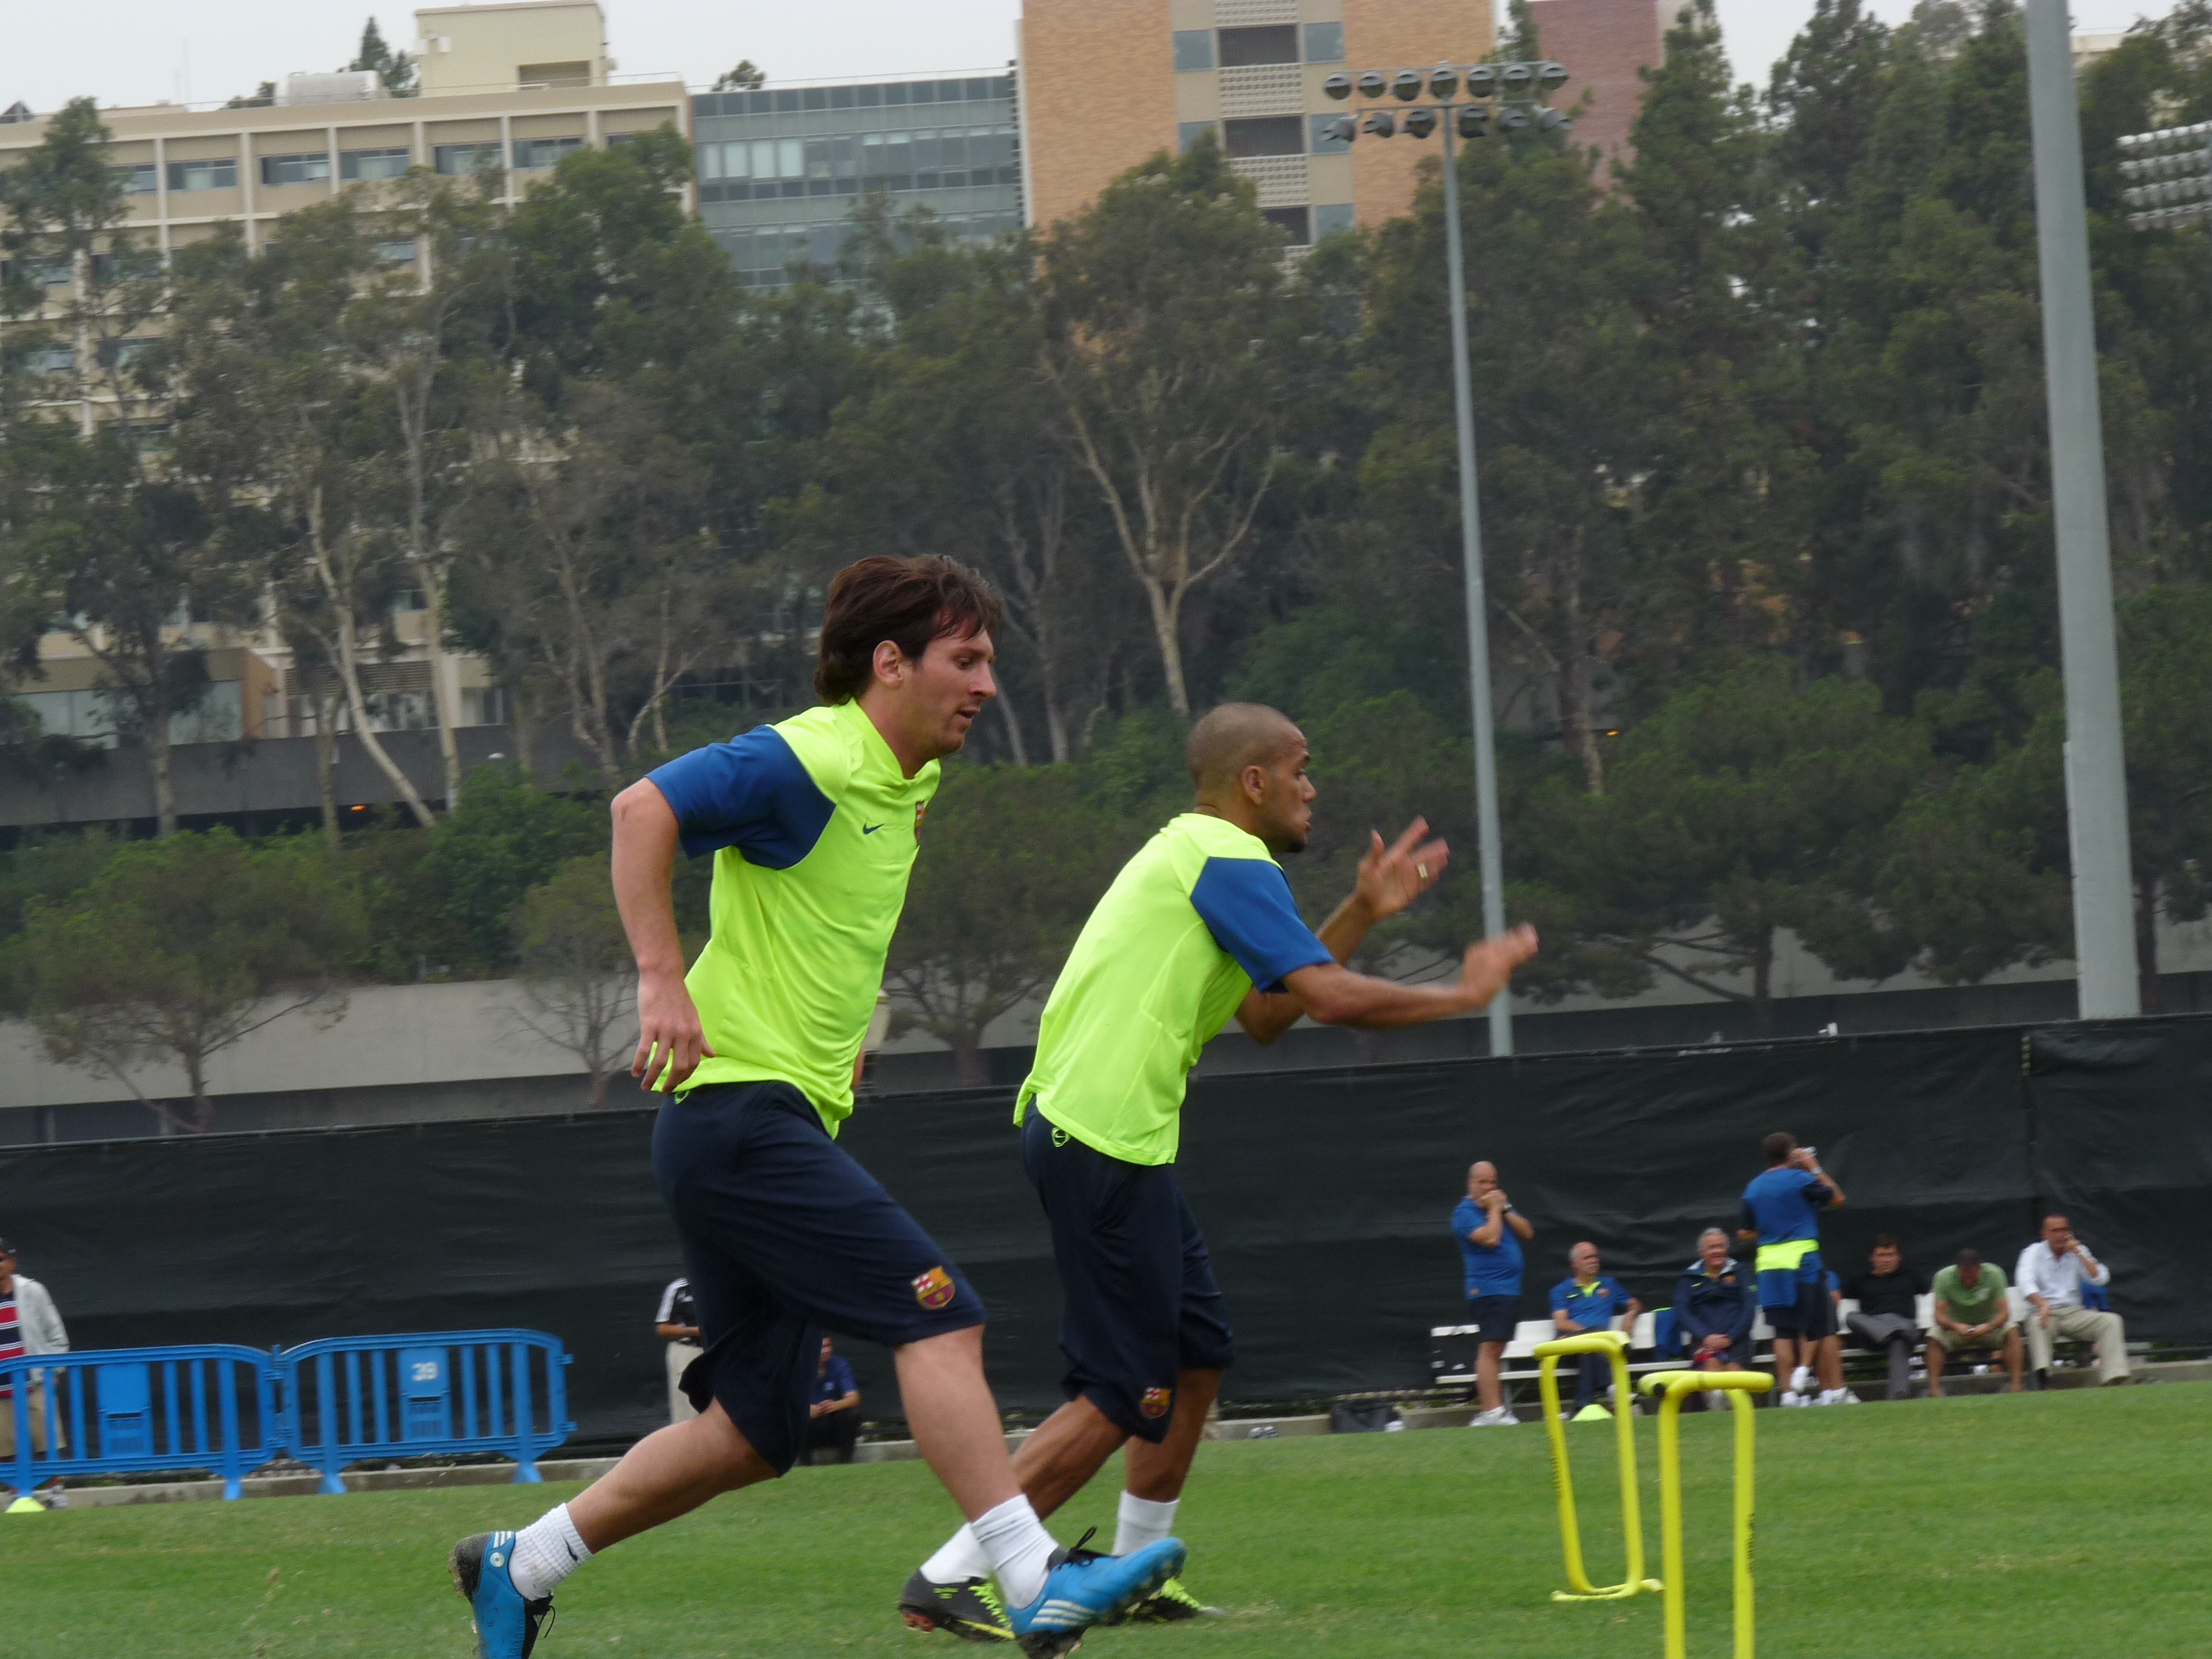 Lionel Messi and Dani Alves training for Barcelona during the USA tour